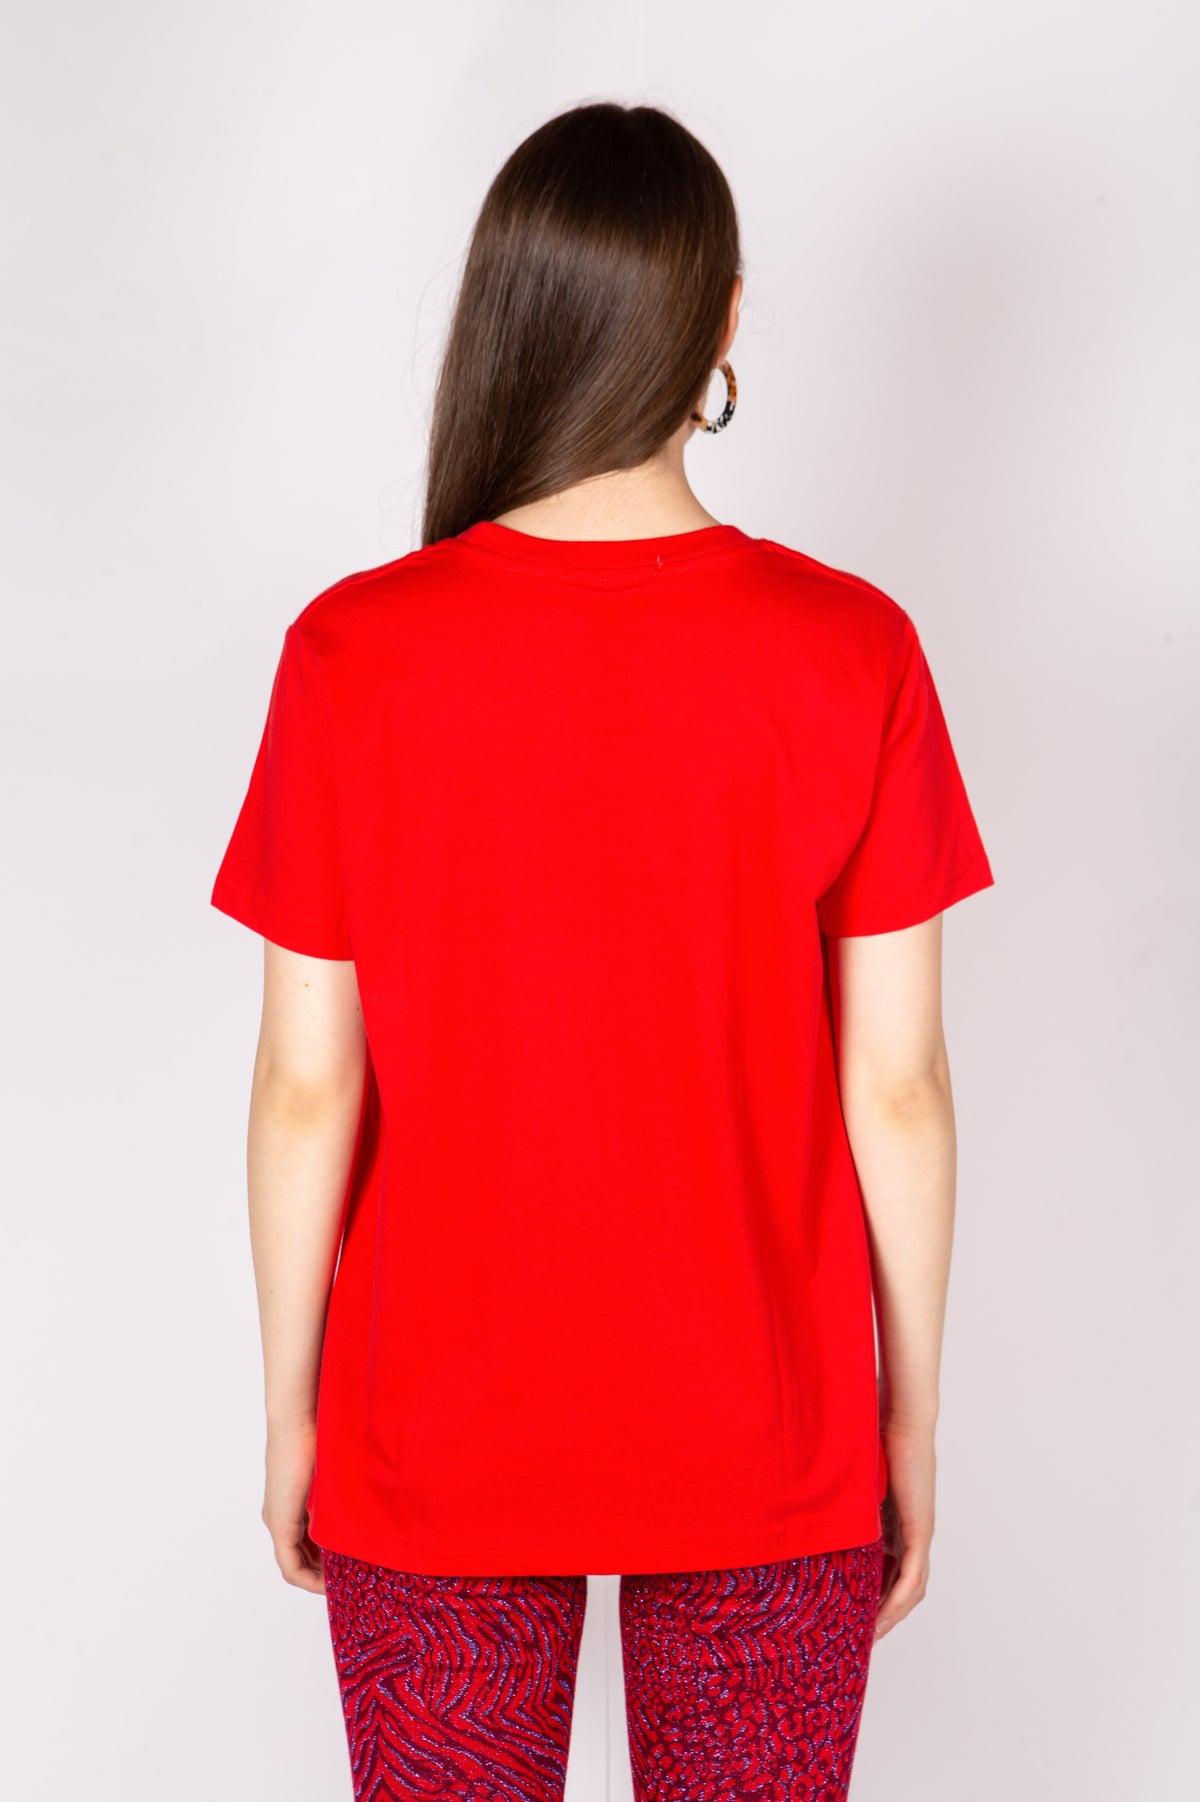 Image of T-SHIRT LUCE STUDIO ROSSO €69 - 50%